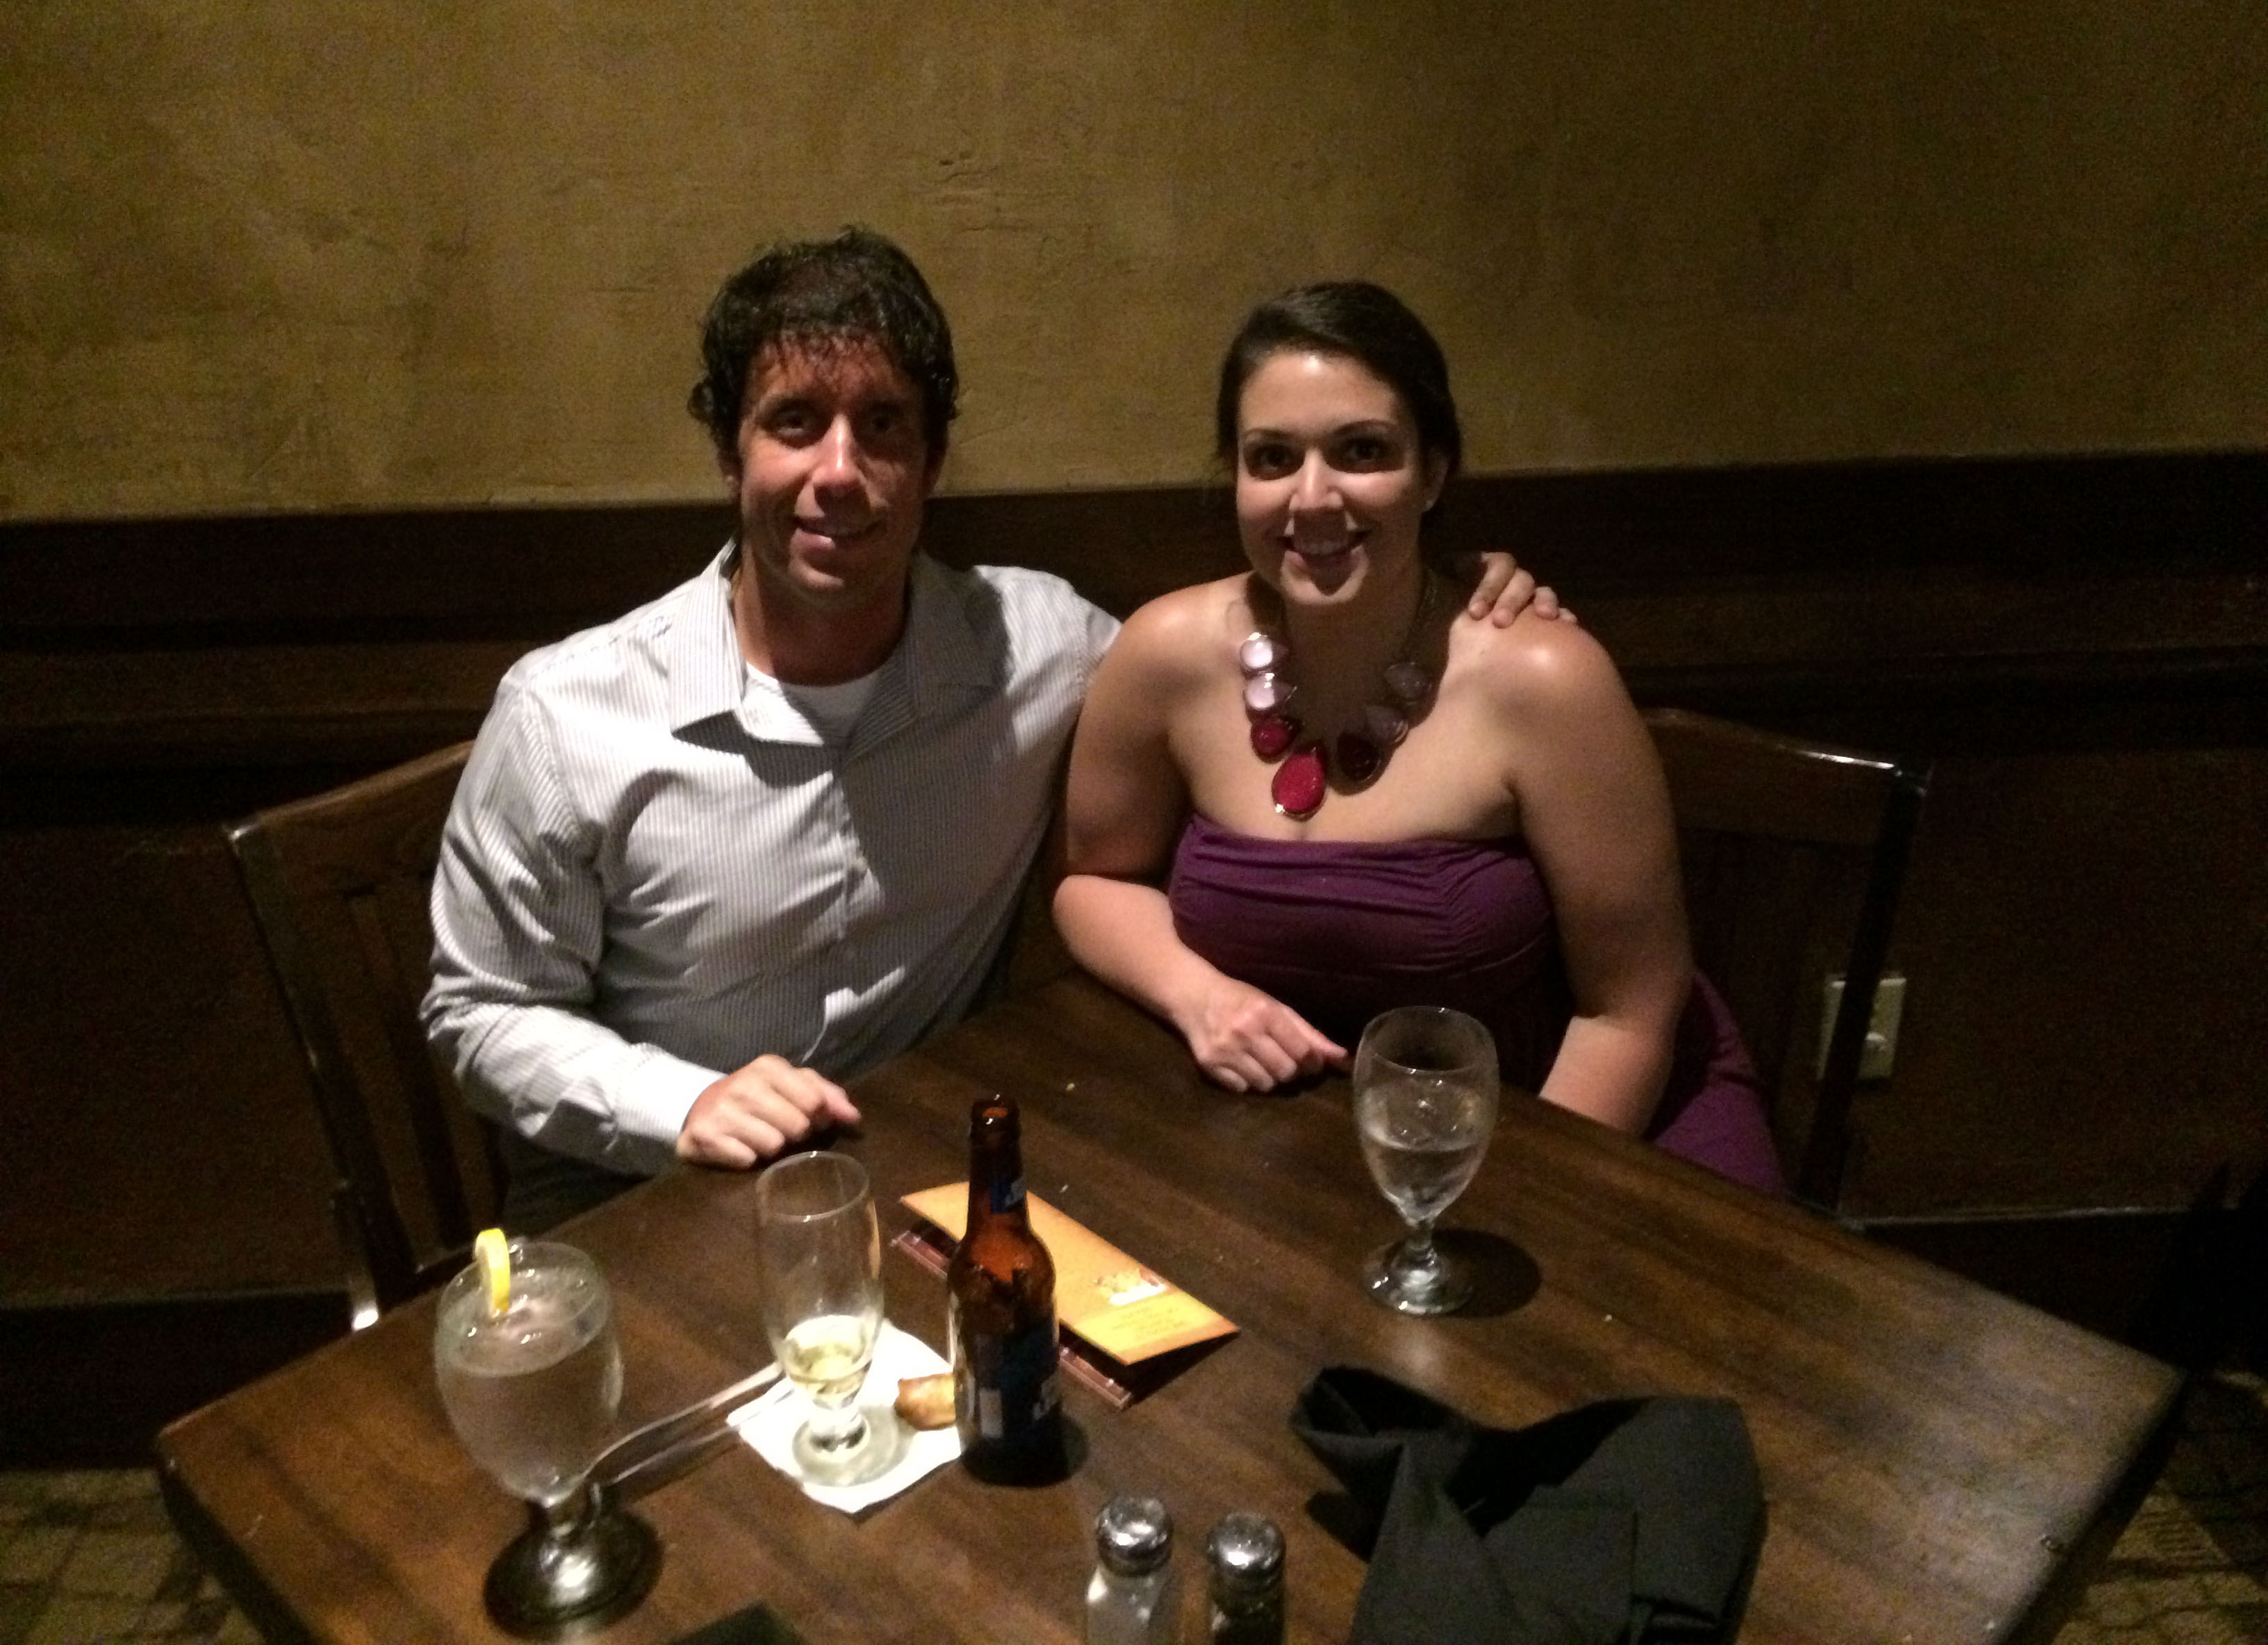 Sidney and I at our table at Rioz.